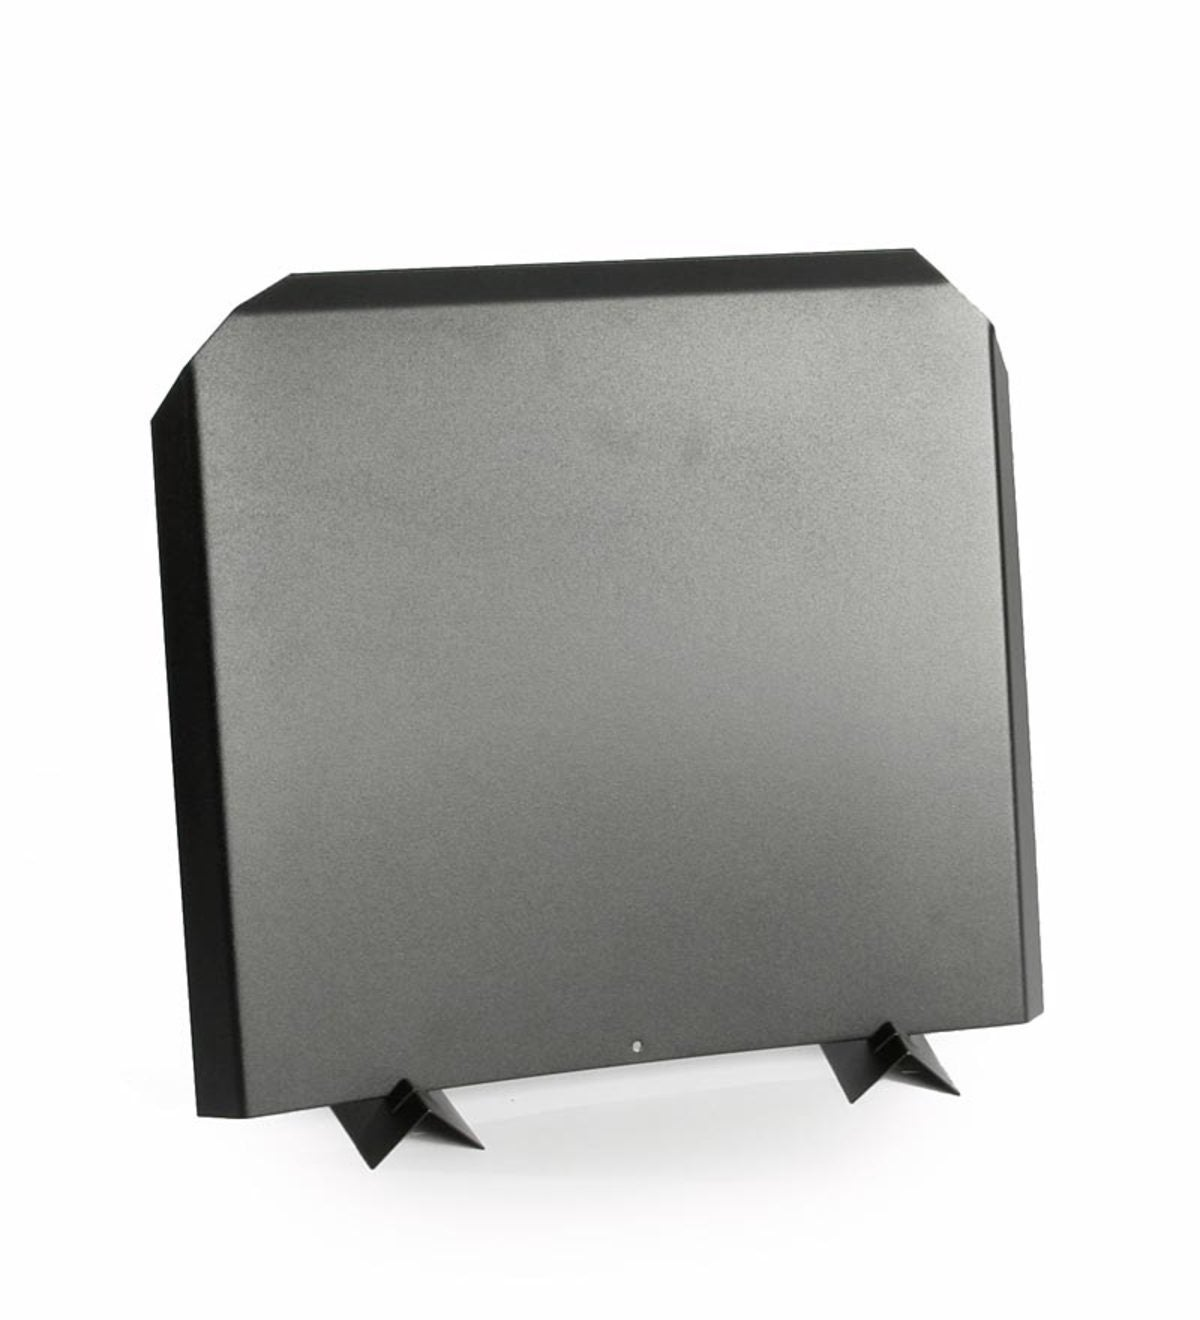 16-Inch Stainless Steel Fireback in Black Finish